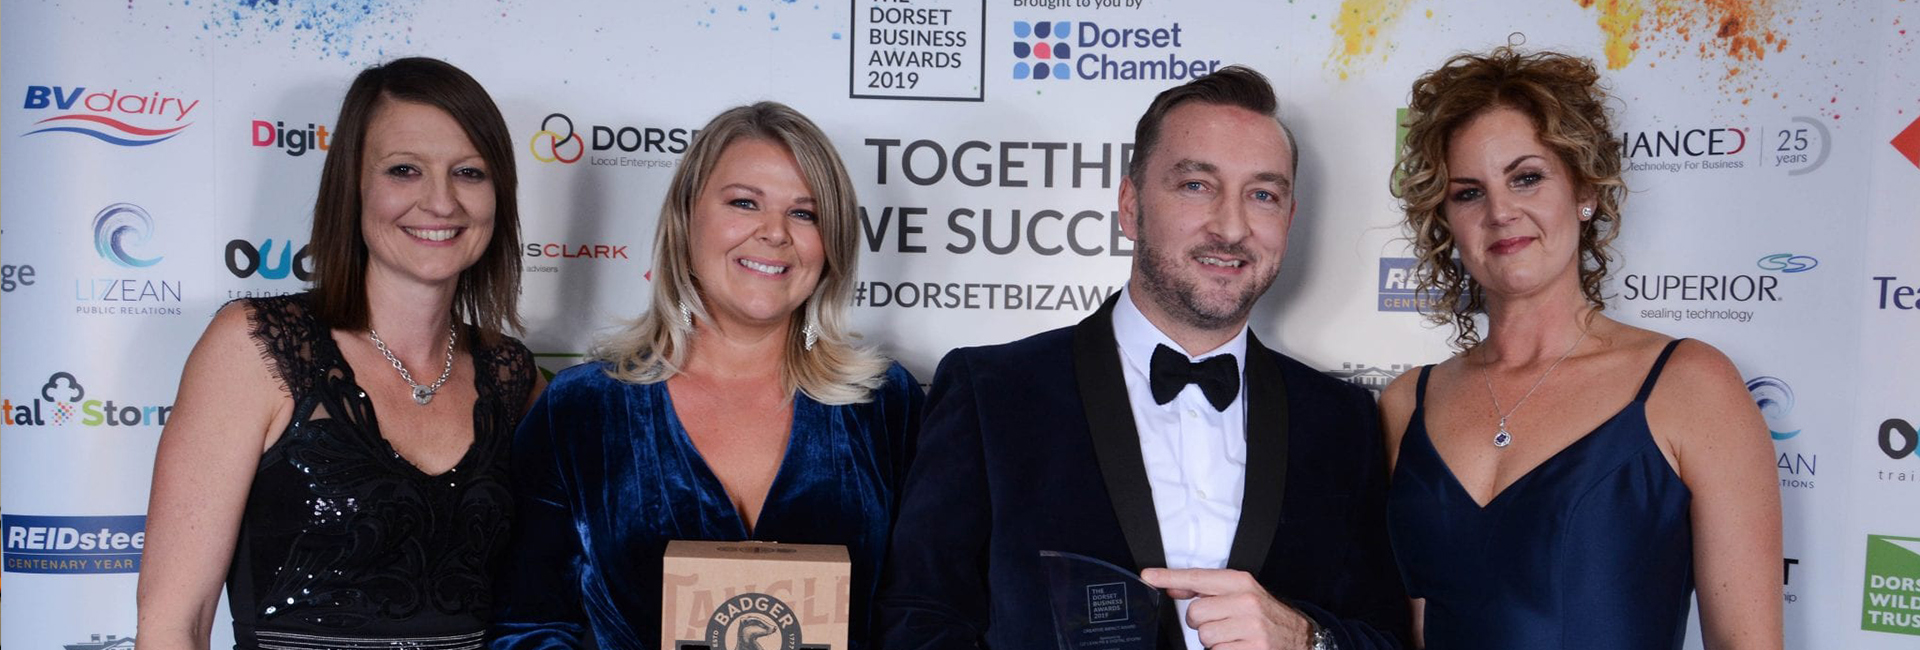 Digital Storm reflects on the 25th Dorset Business Awards